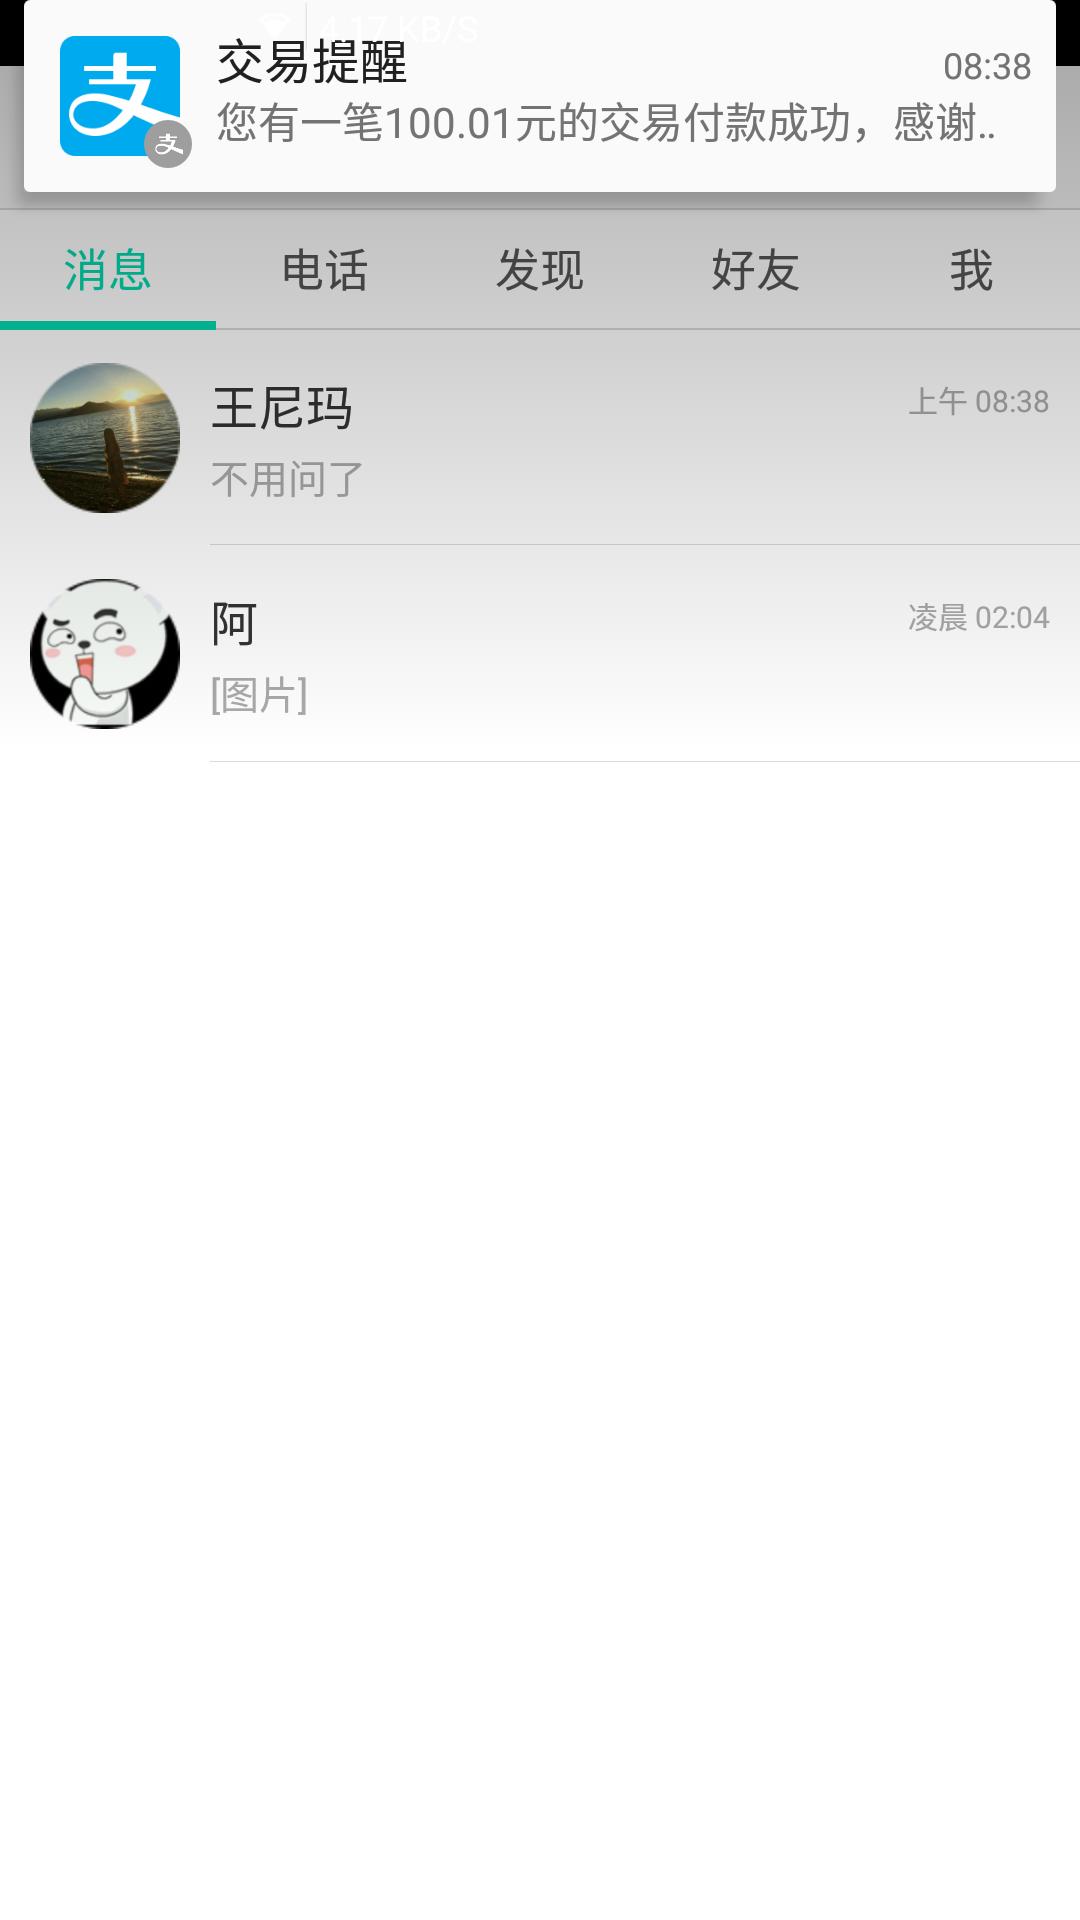 Screenshot_2015-09-03-08-38-51.png